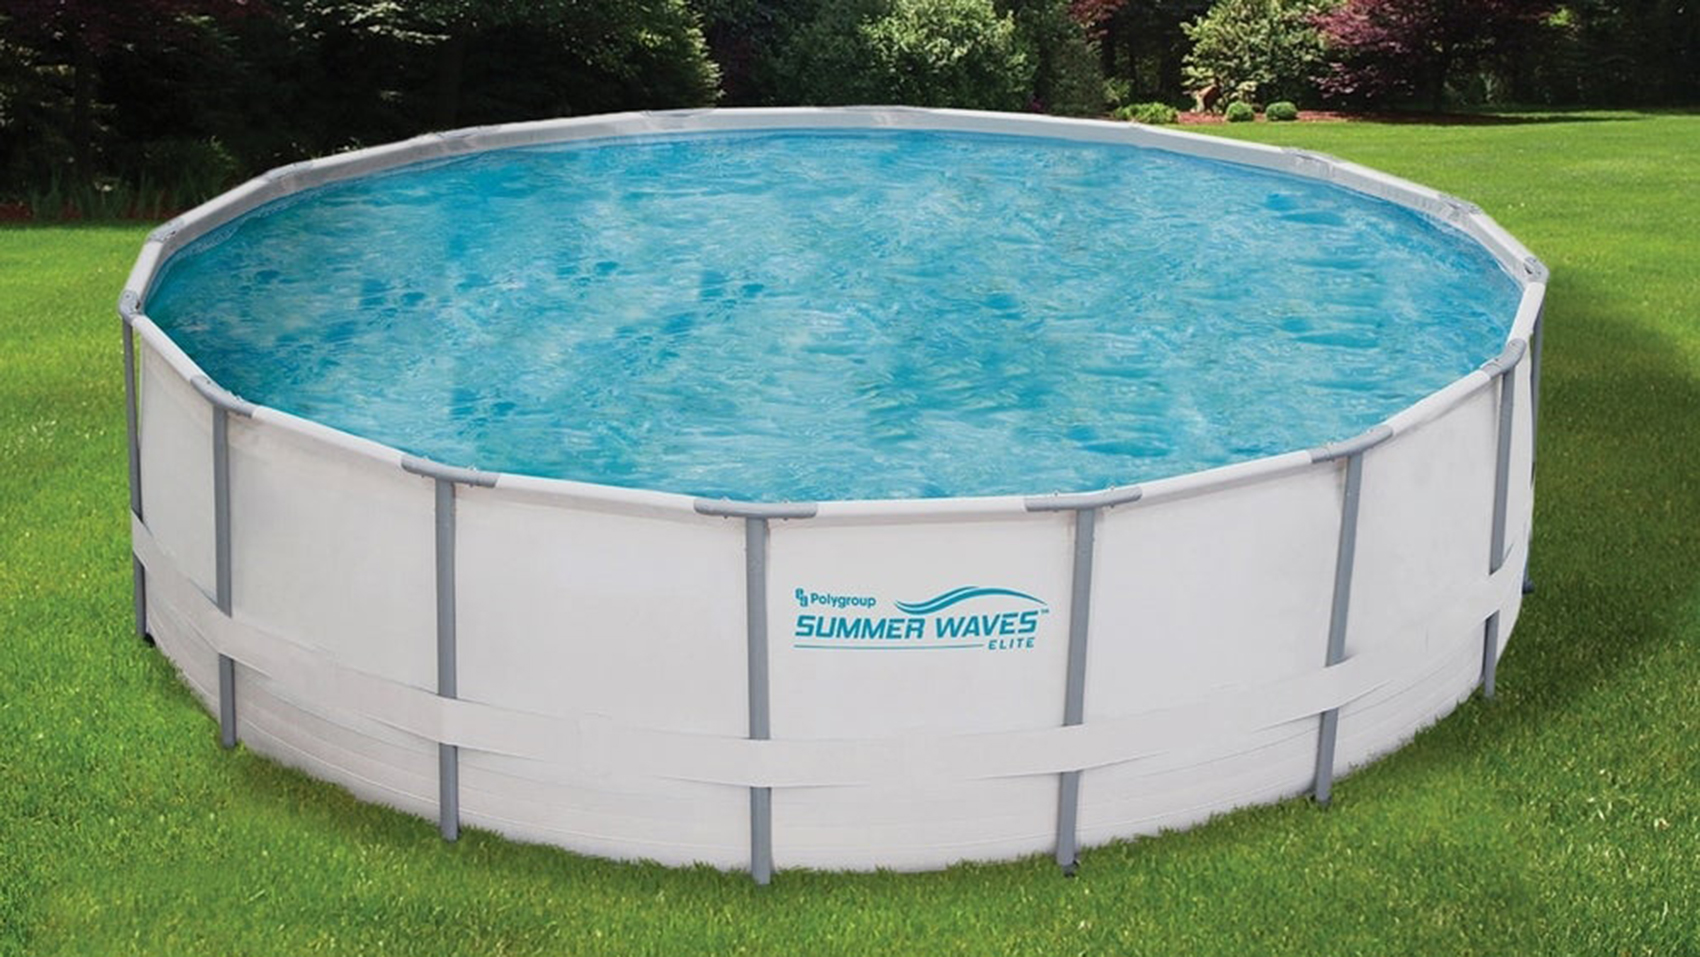 Buljiti Boca Arrowhead 18 X 48 Swimming Pool Amazon Goldstandardsounds Com